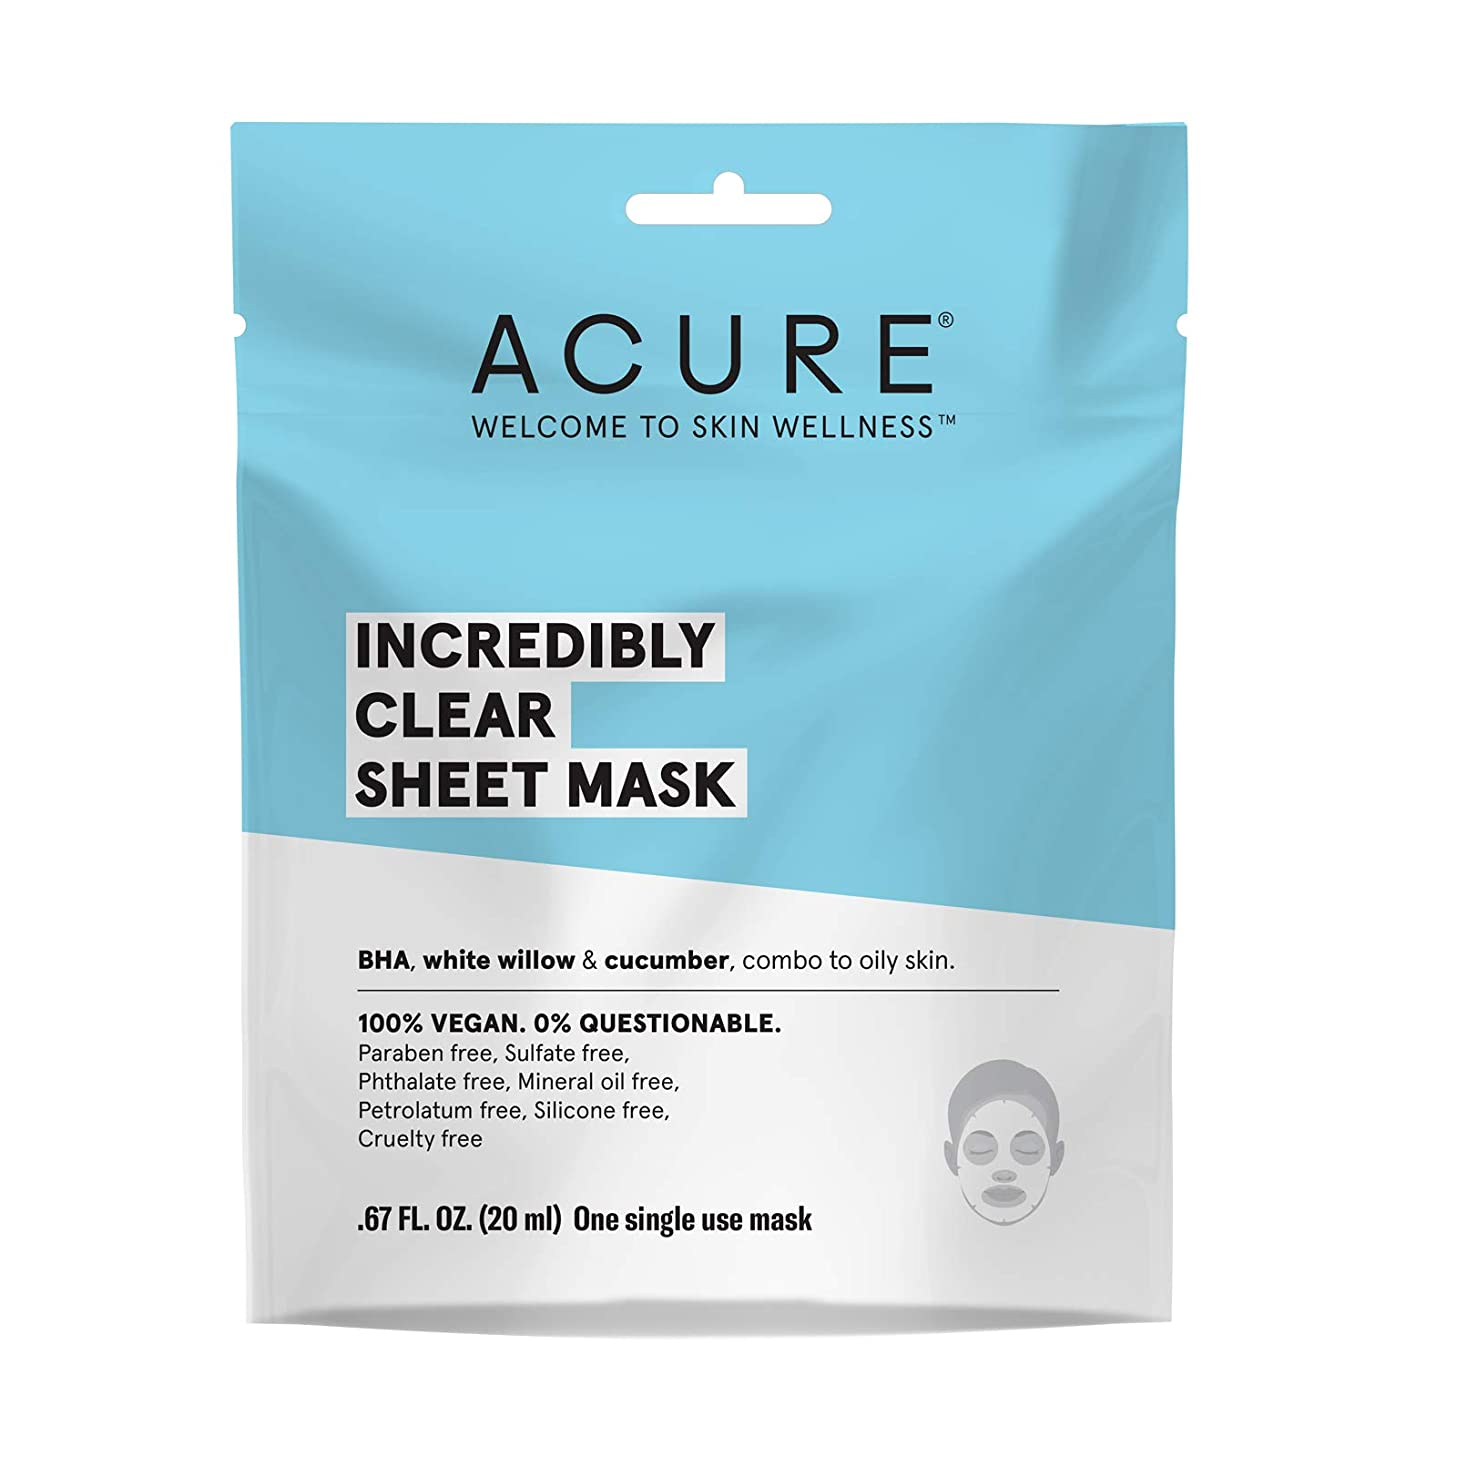 ACURE Incredibly Clear Sheet Mask, 5 Count (Packaging May Vary)